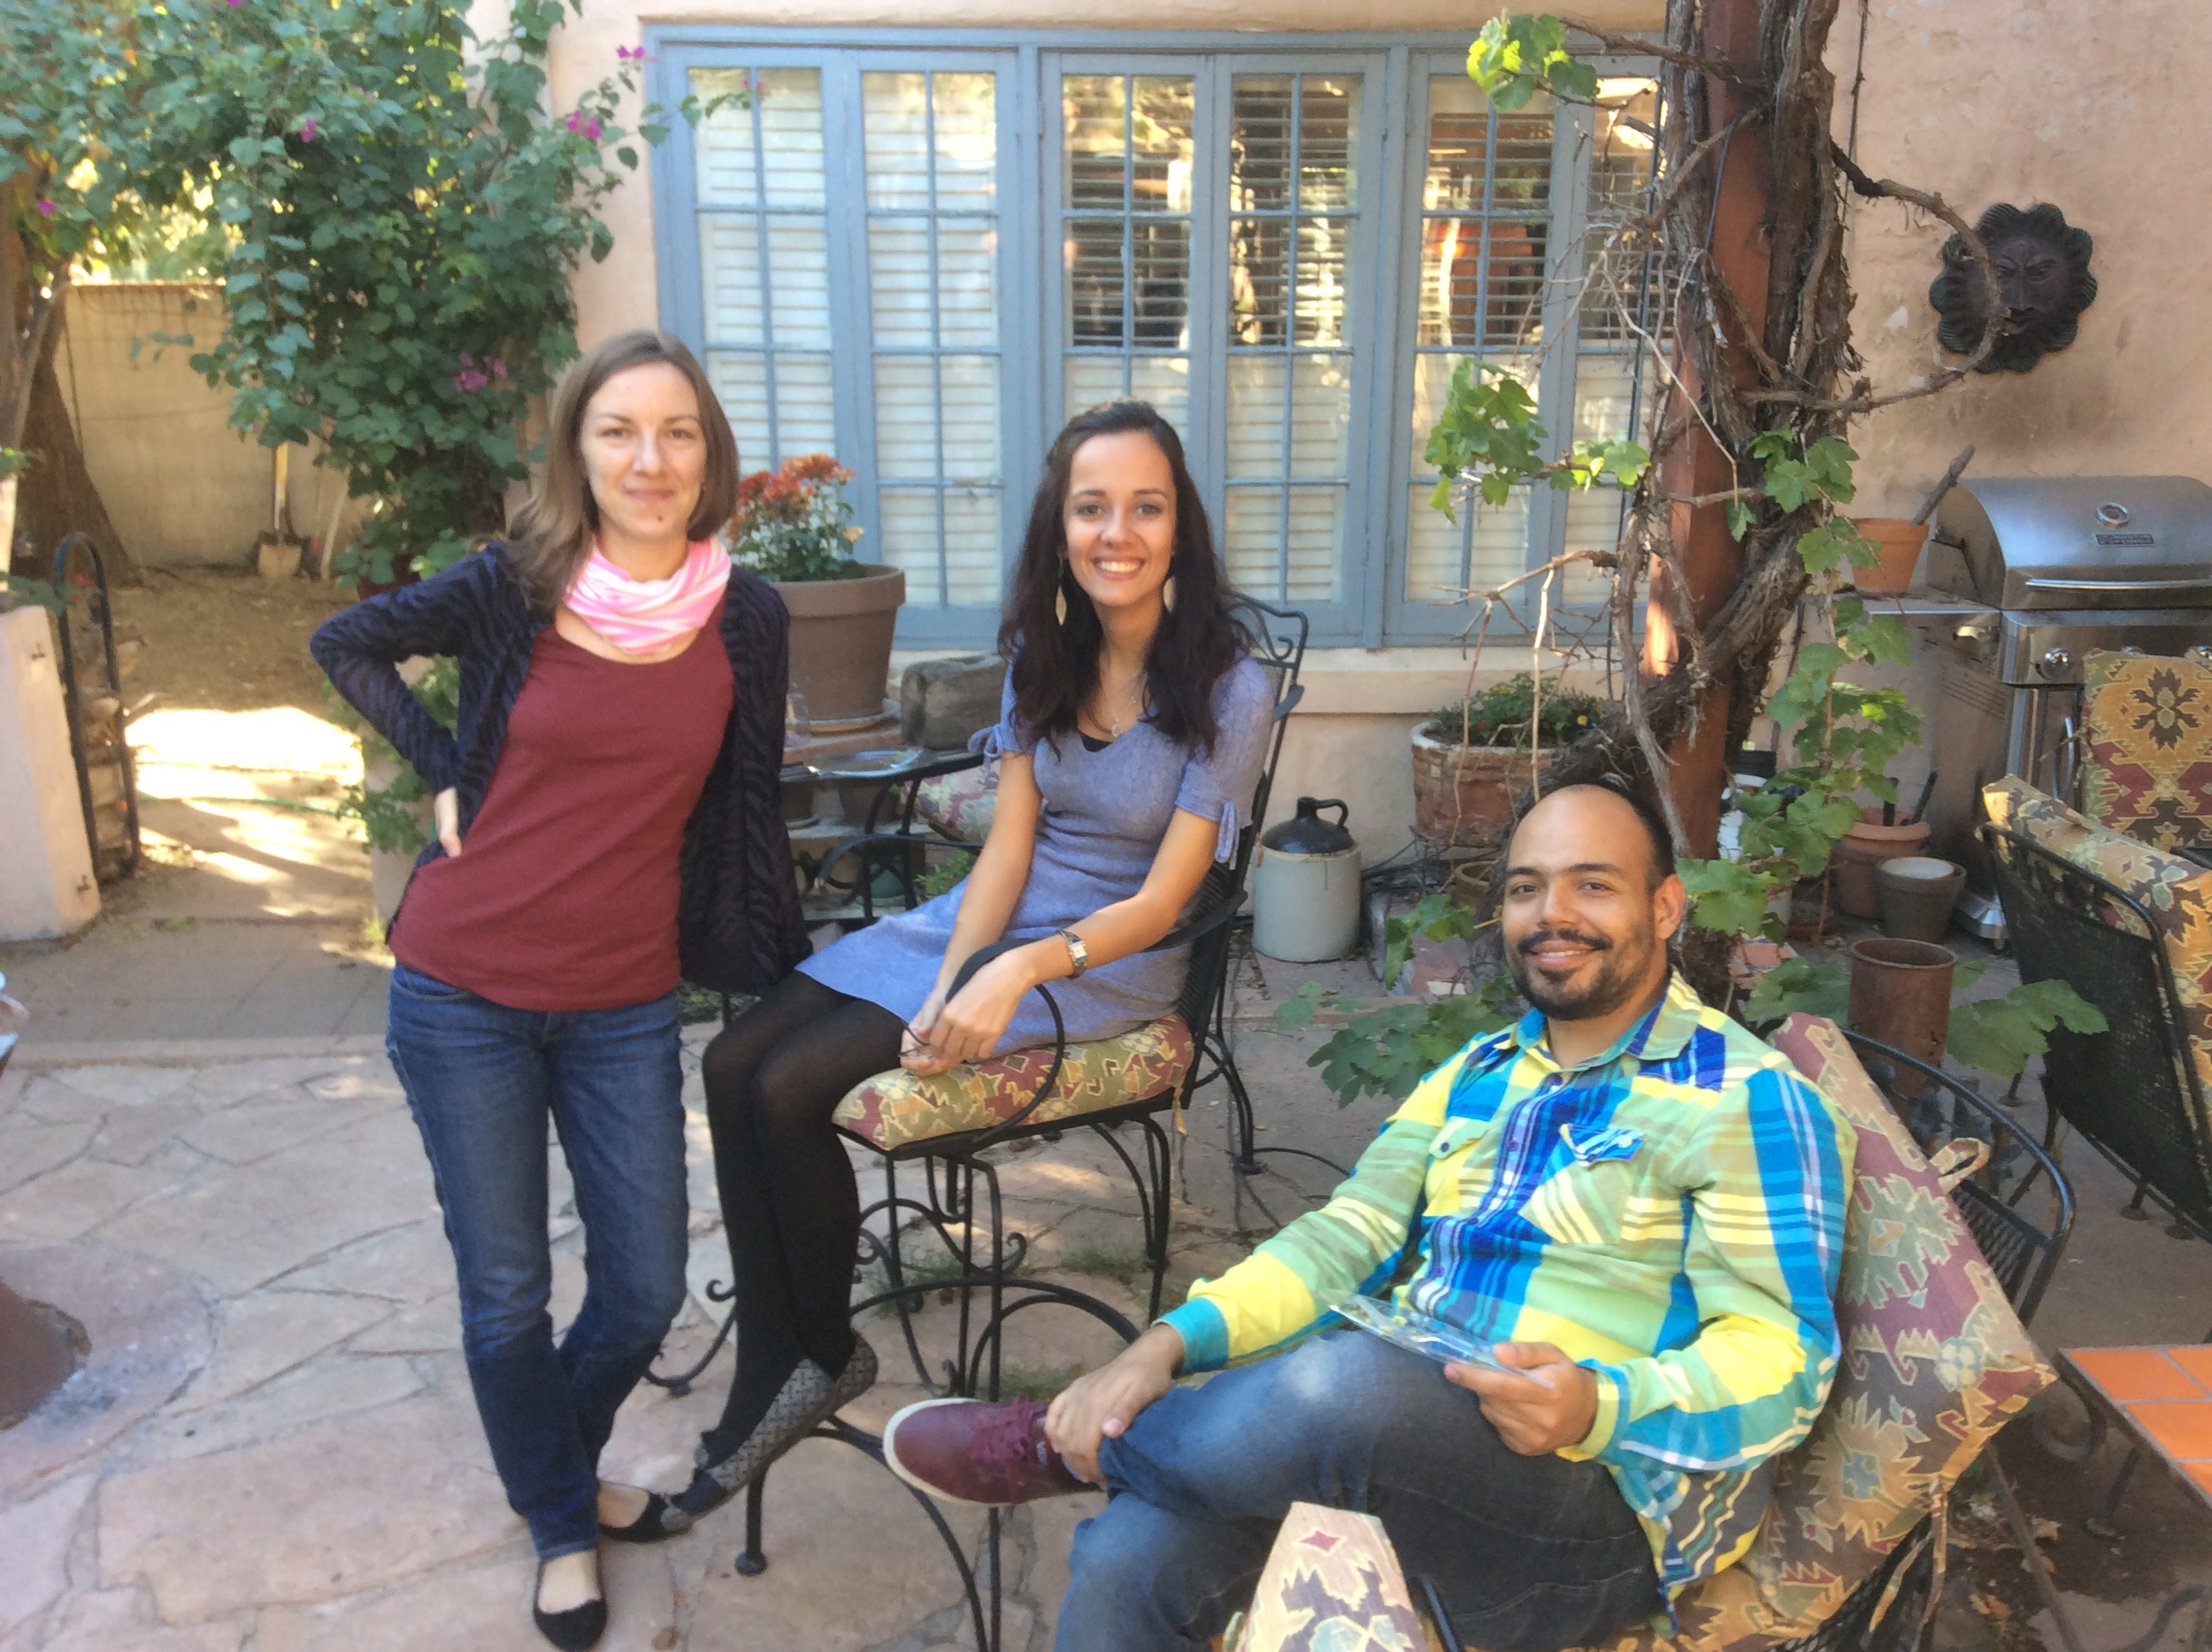 nastya, dilsat, and allan at the house on thanksgiving day, november 2014